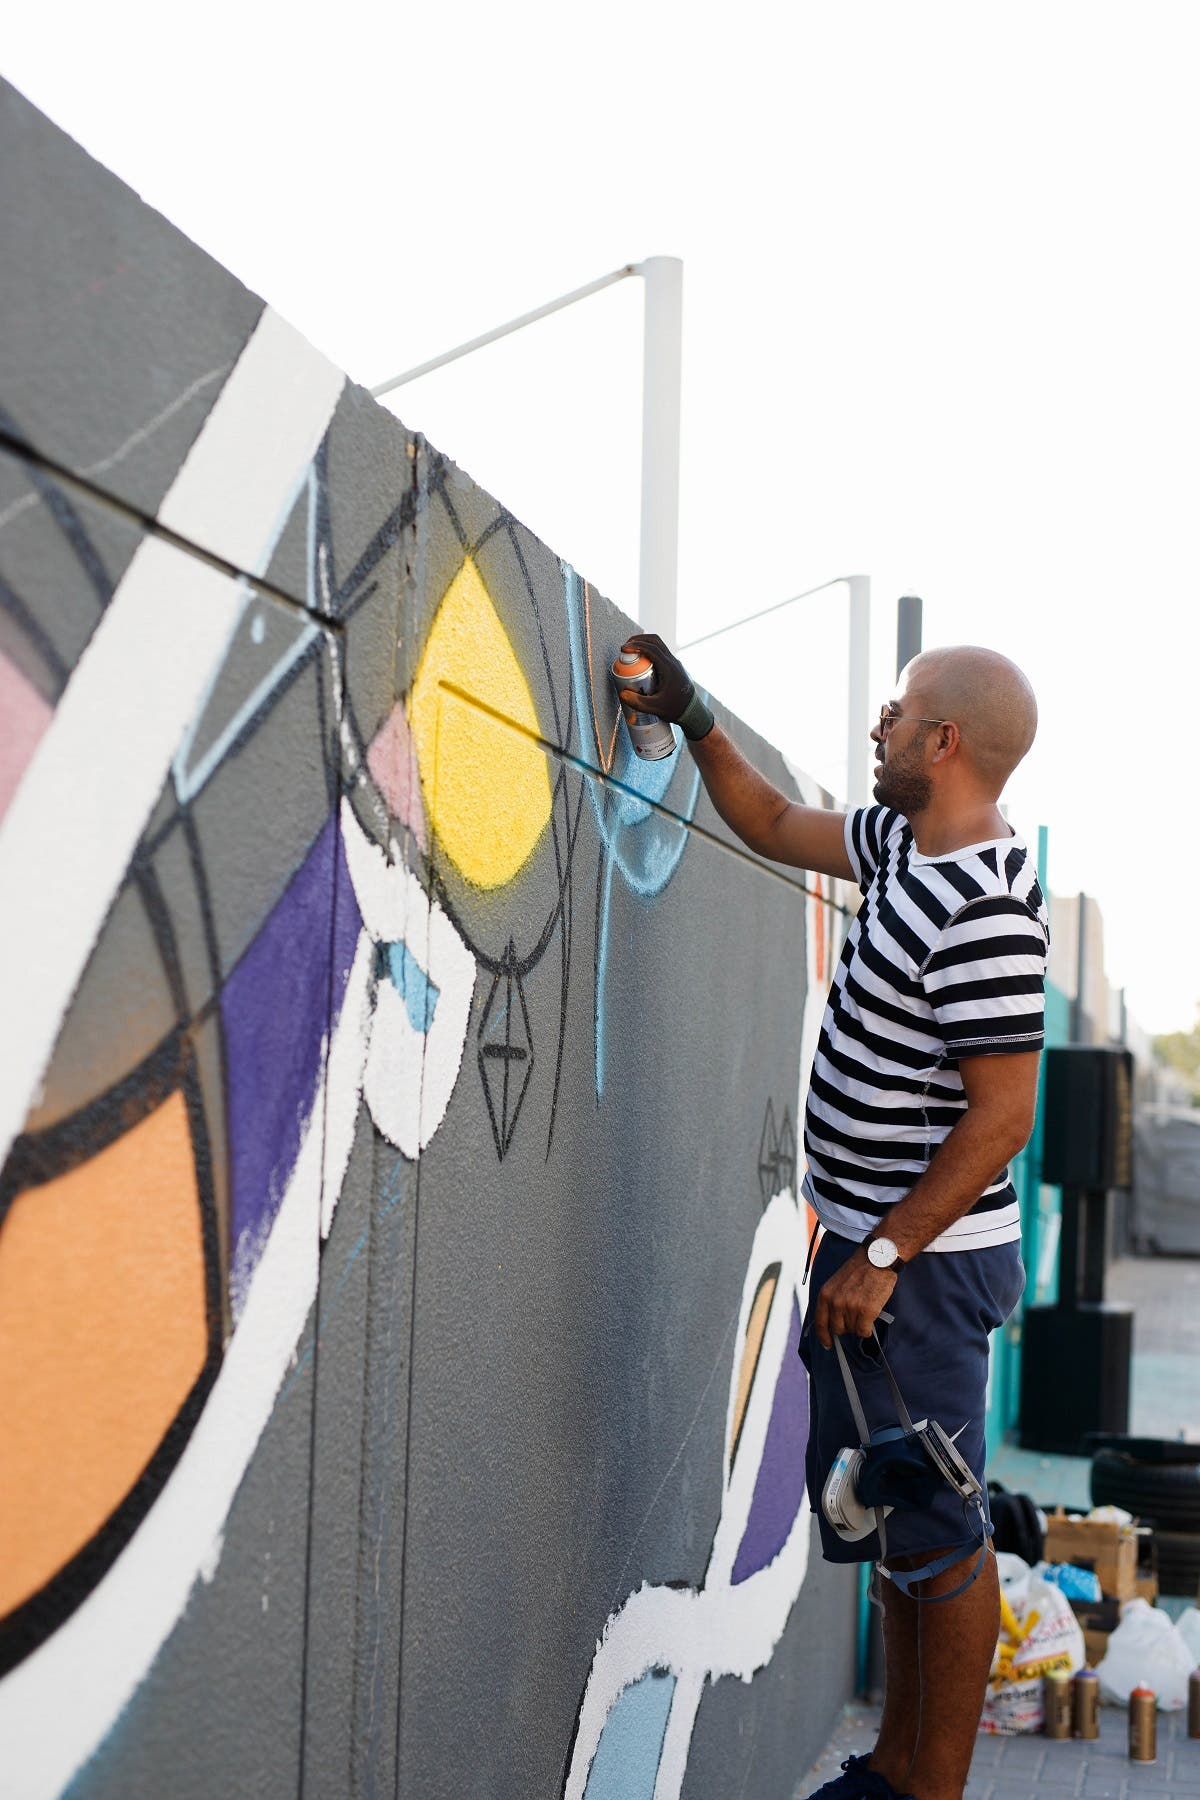 World-renowned artist eL Seed painting a mural  in Alserkal Avenue -- where his studio is based -- that pays tribute to Melehi's work. (Photo by Angelo Jandri, courtesy Alserkal Avenue)